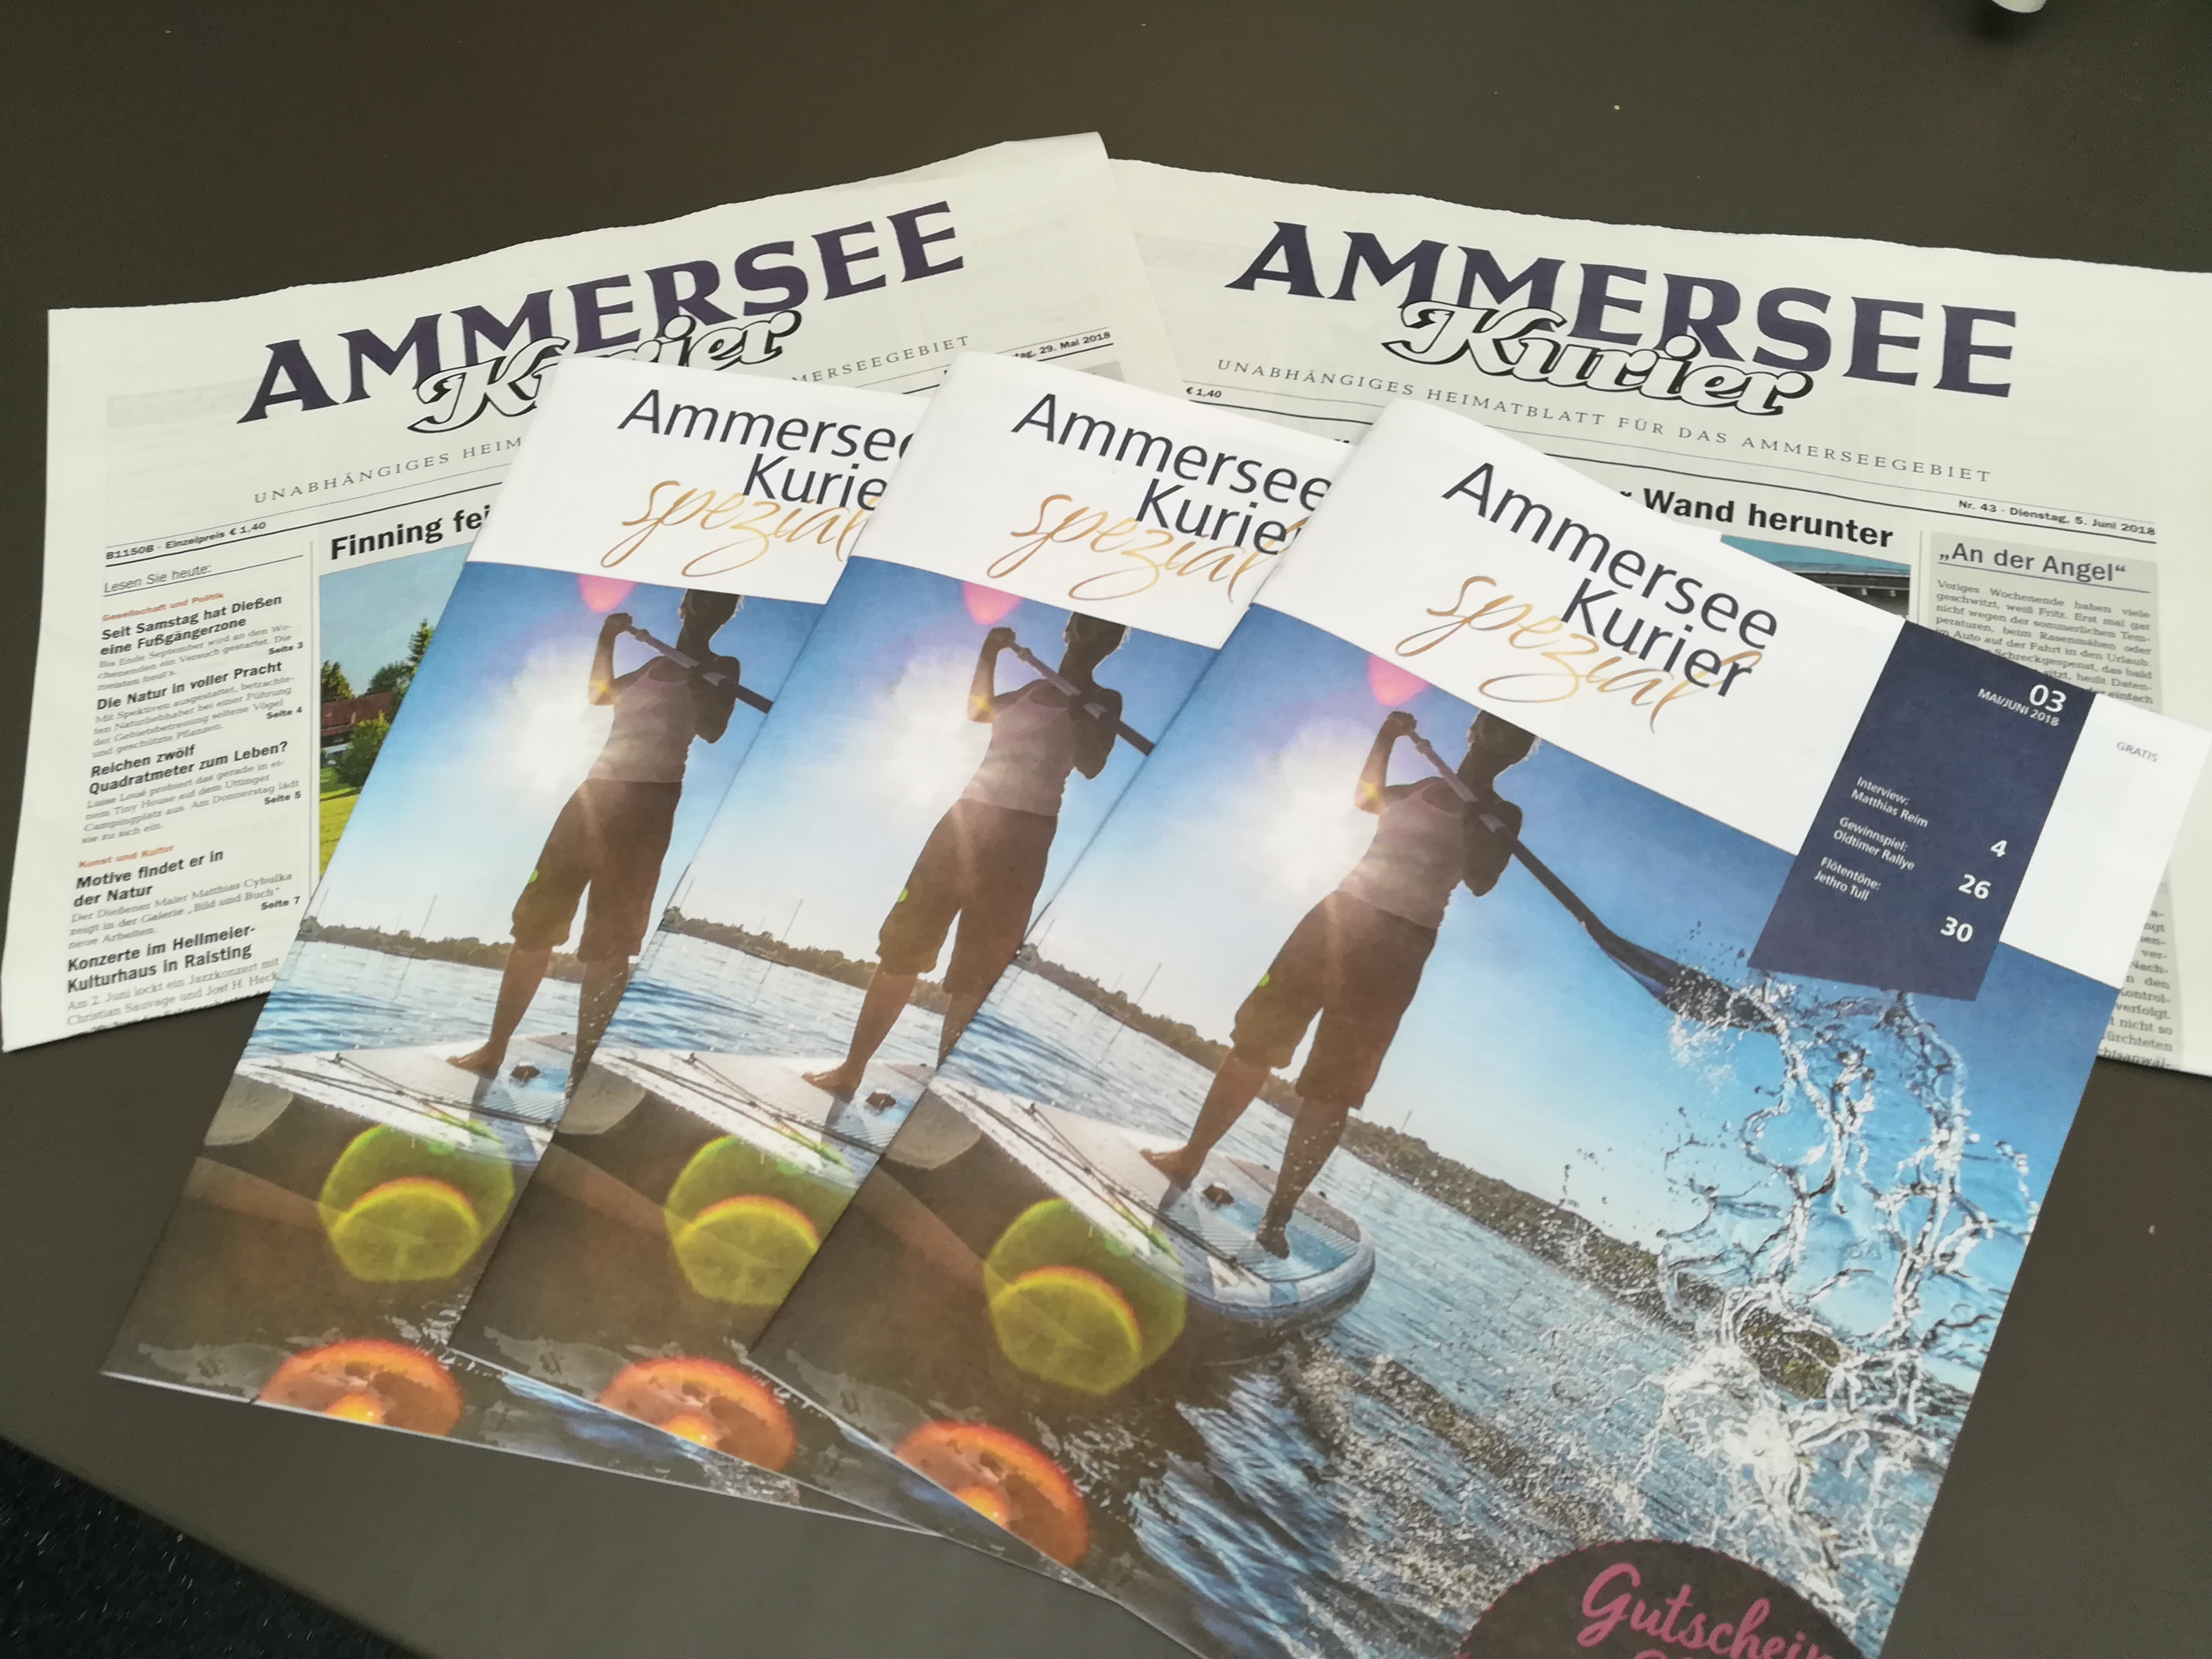 Ammersee Kurier